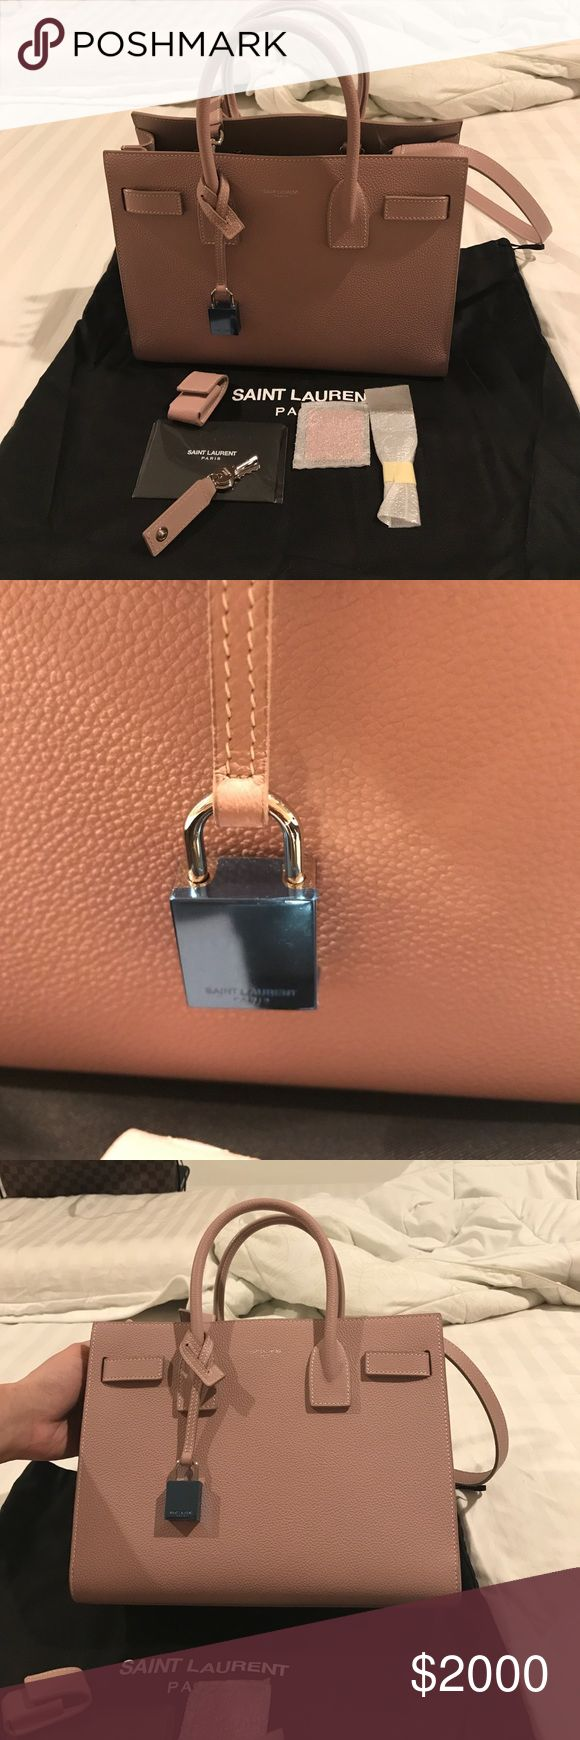 Saint Laurent Paris bag Authentic new saint laurent Paris but with no tags. The plastic cover on the lock still hasn't remove. Still got all the accessories that come with the bag. Feel free to ask questions. Saint Laurent Bags Satchels